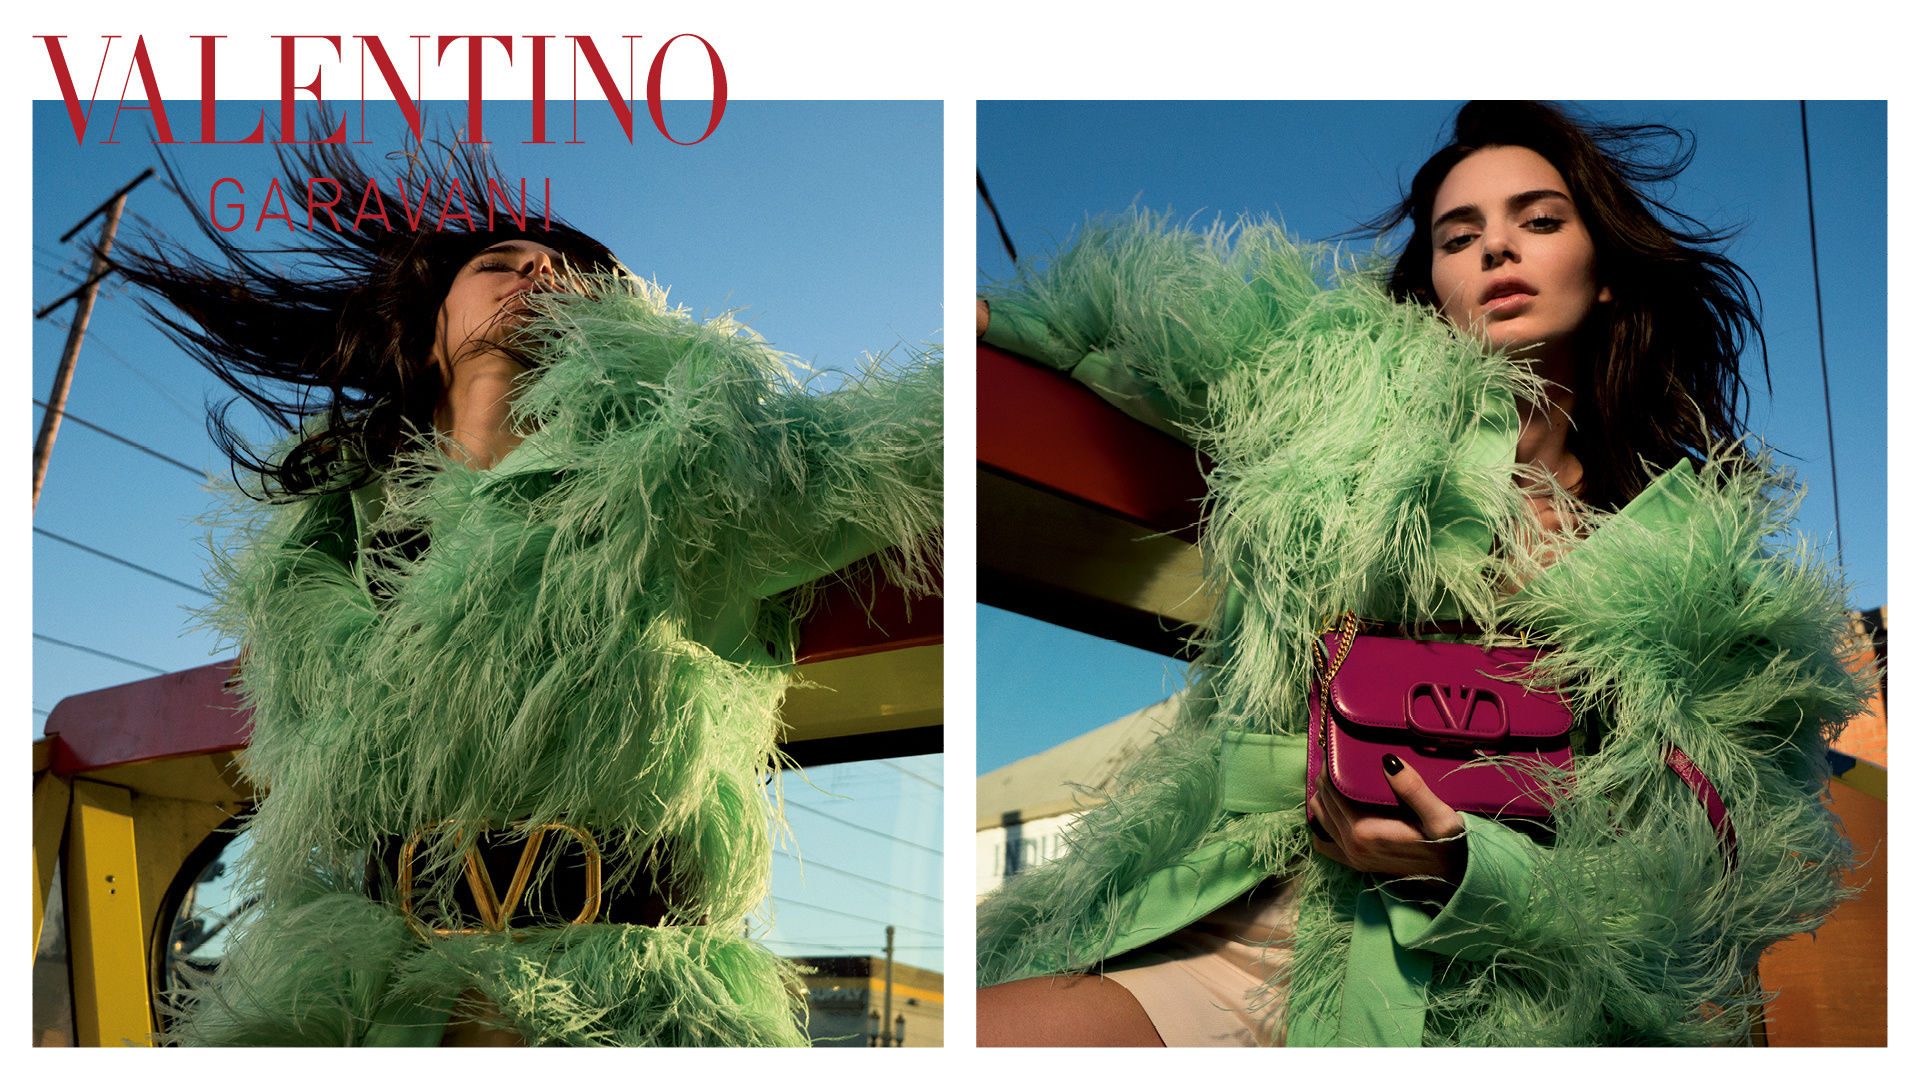 Valentino Garavani VSLING Bag Resort 2020 Fashion Ad Campaign